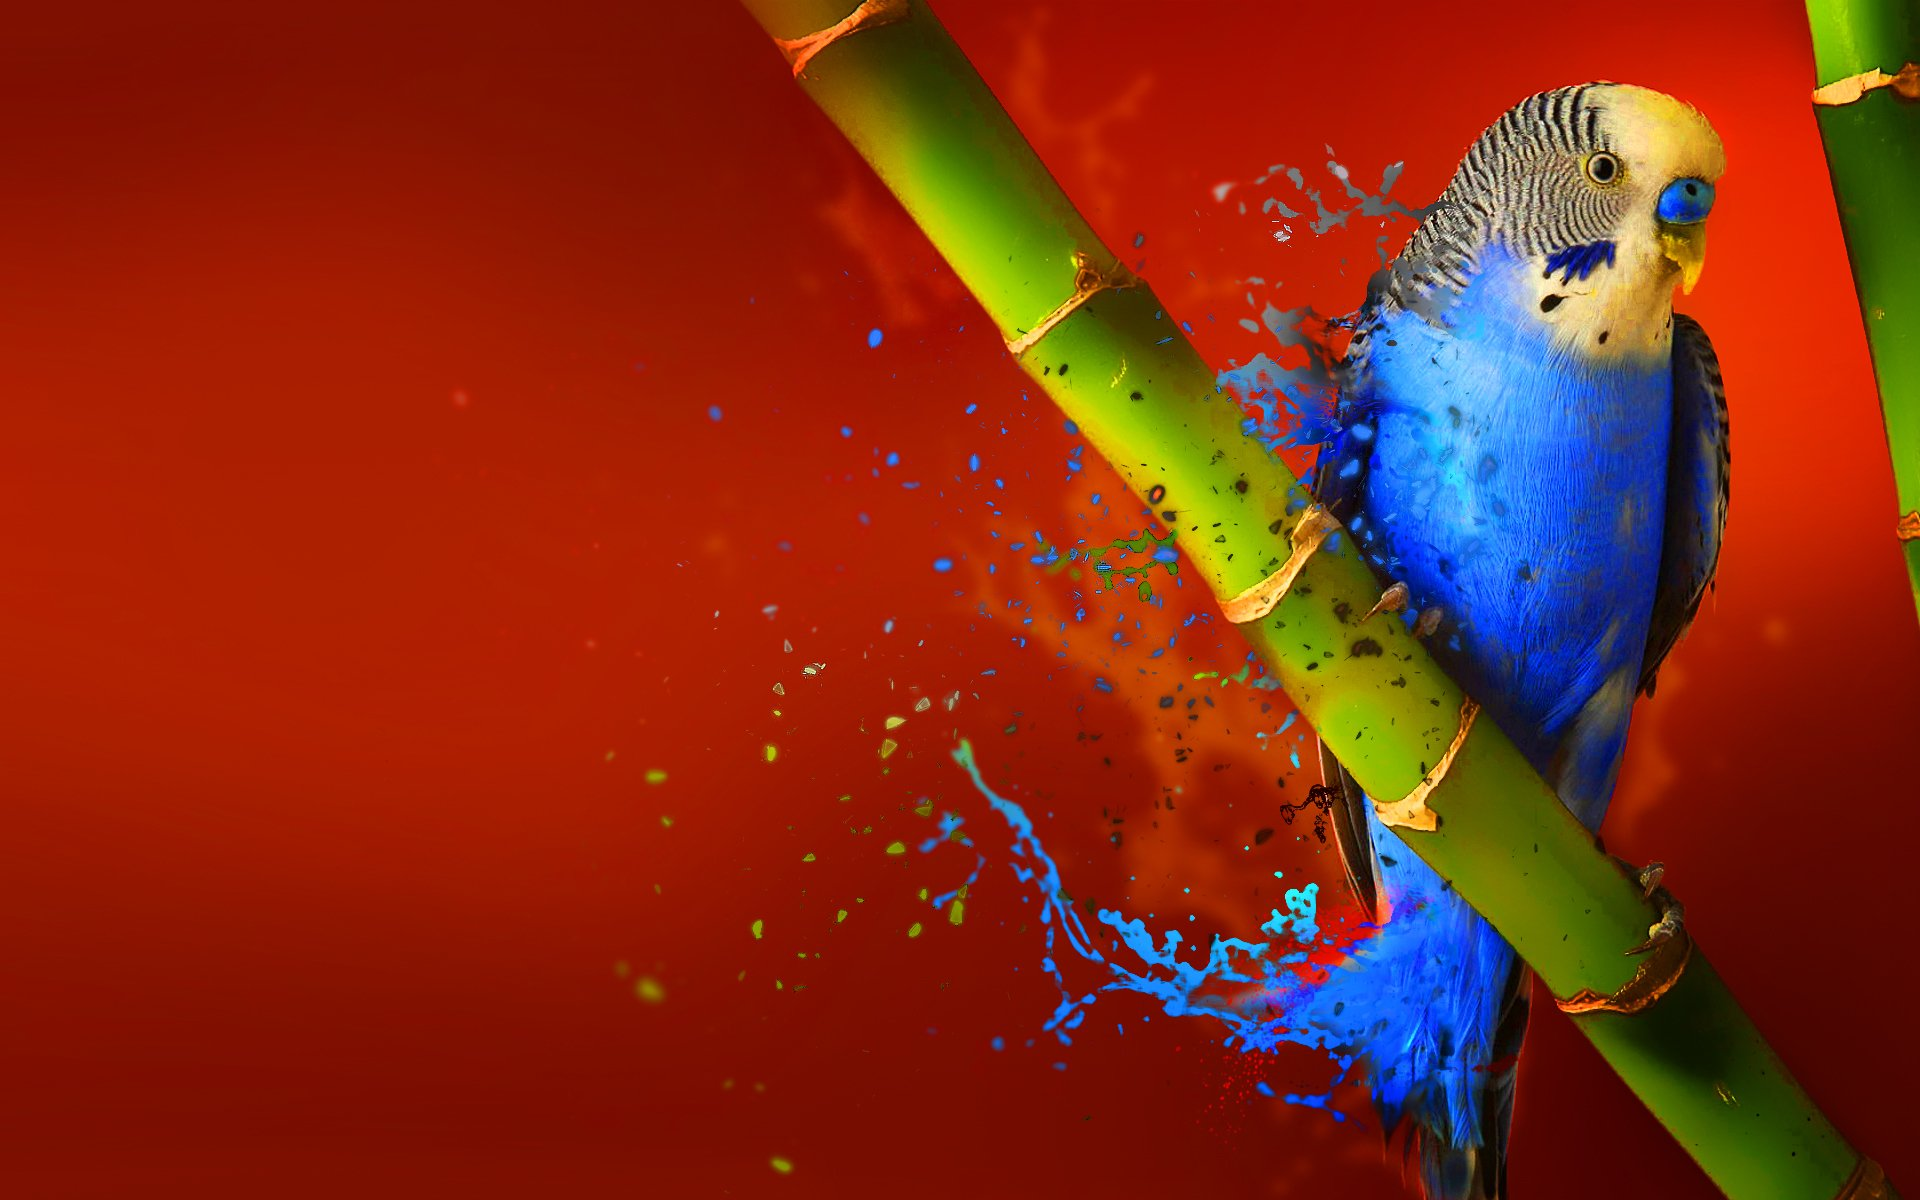 Bird Of Paradise Wallpaper Iphone 5 Budgerigar Full Hd Wallpaper And Background Image